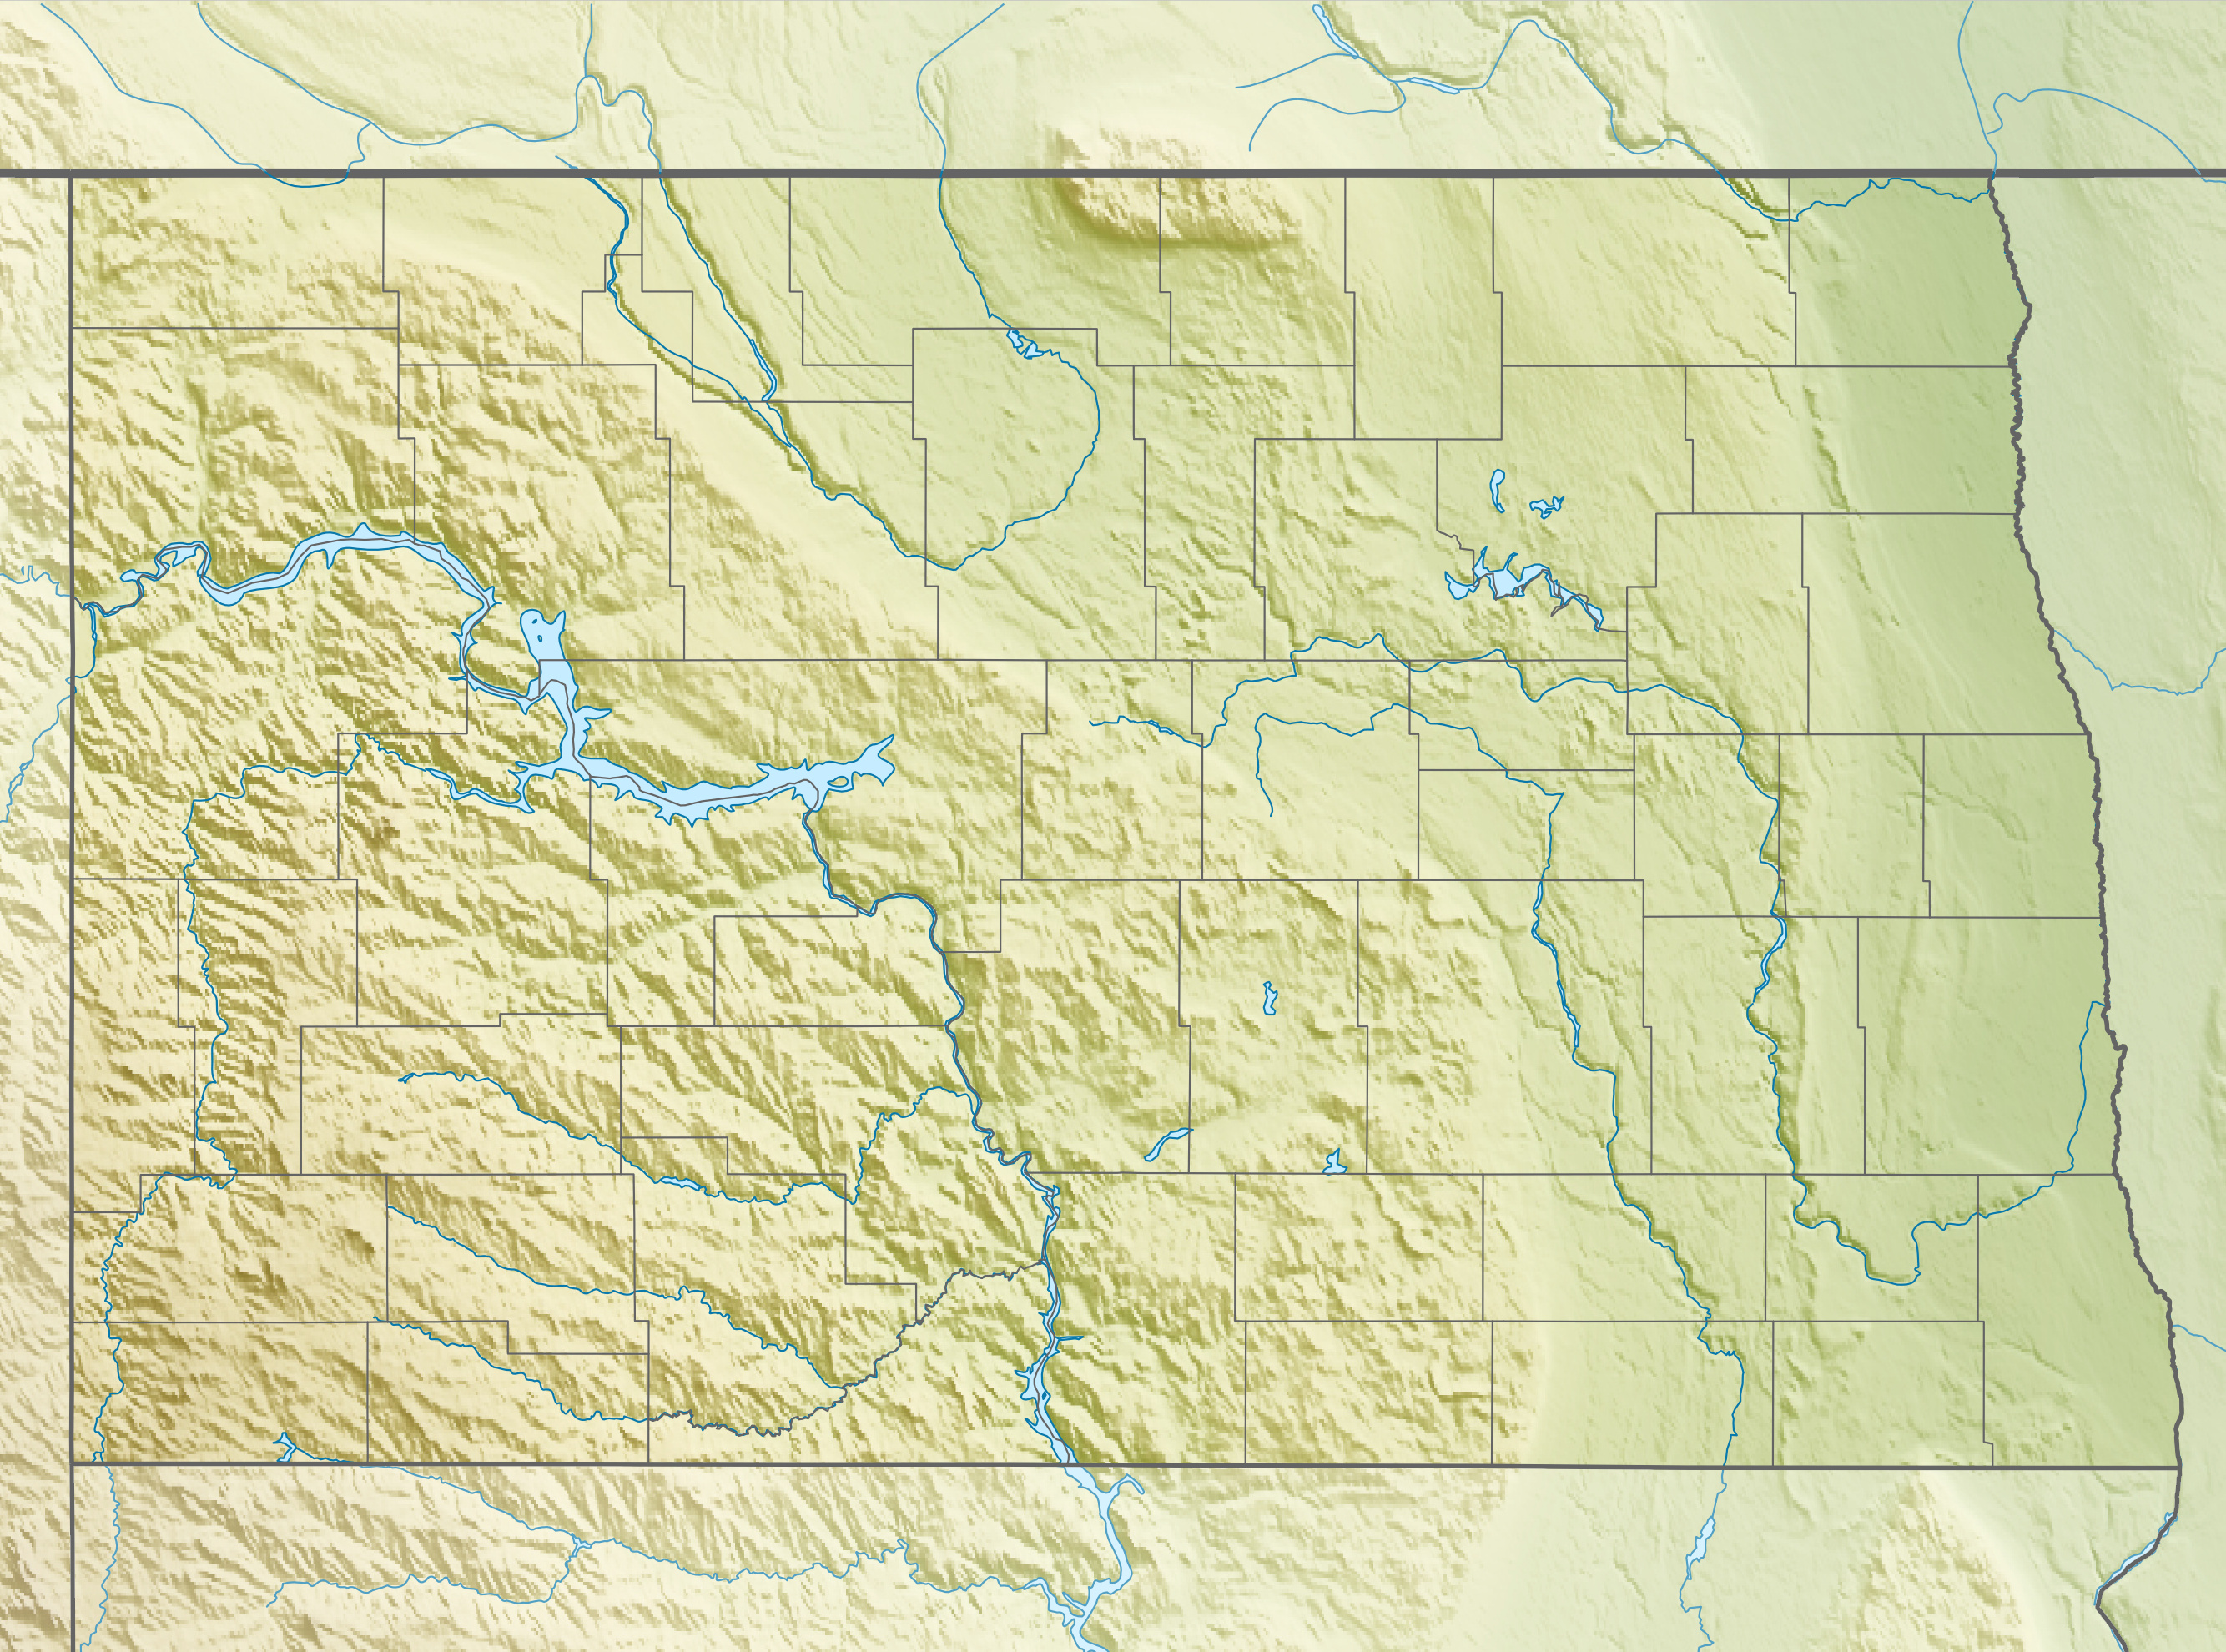 File:USA North Dakota relief location map.jpg - Wikimedia Commons